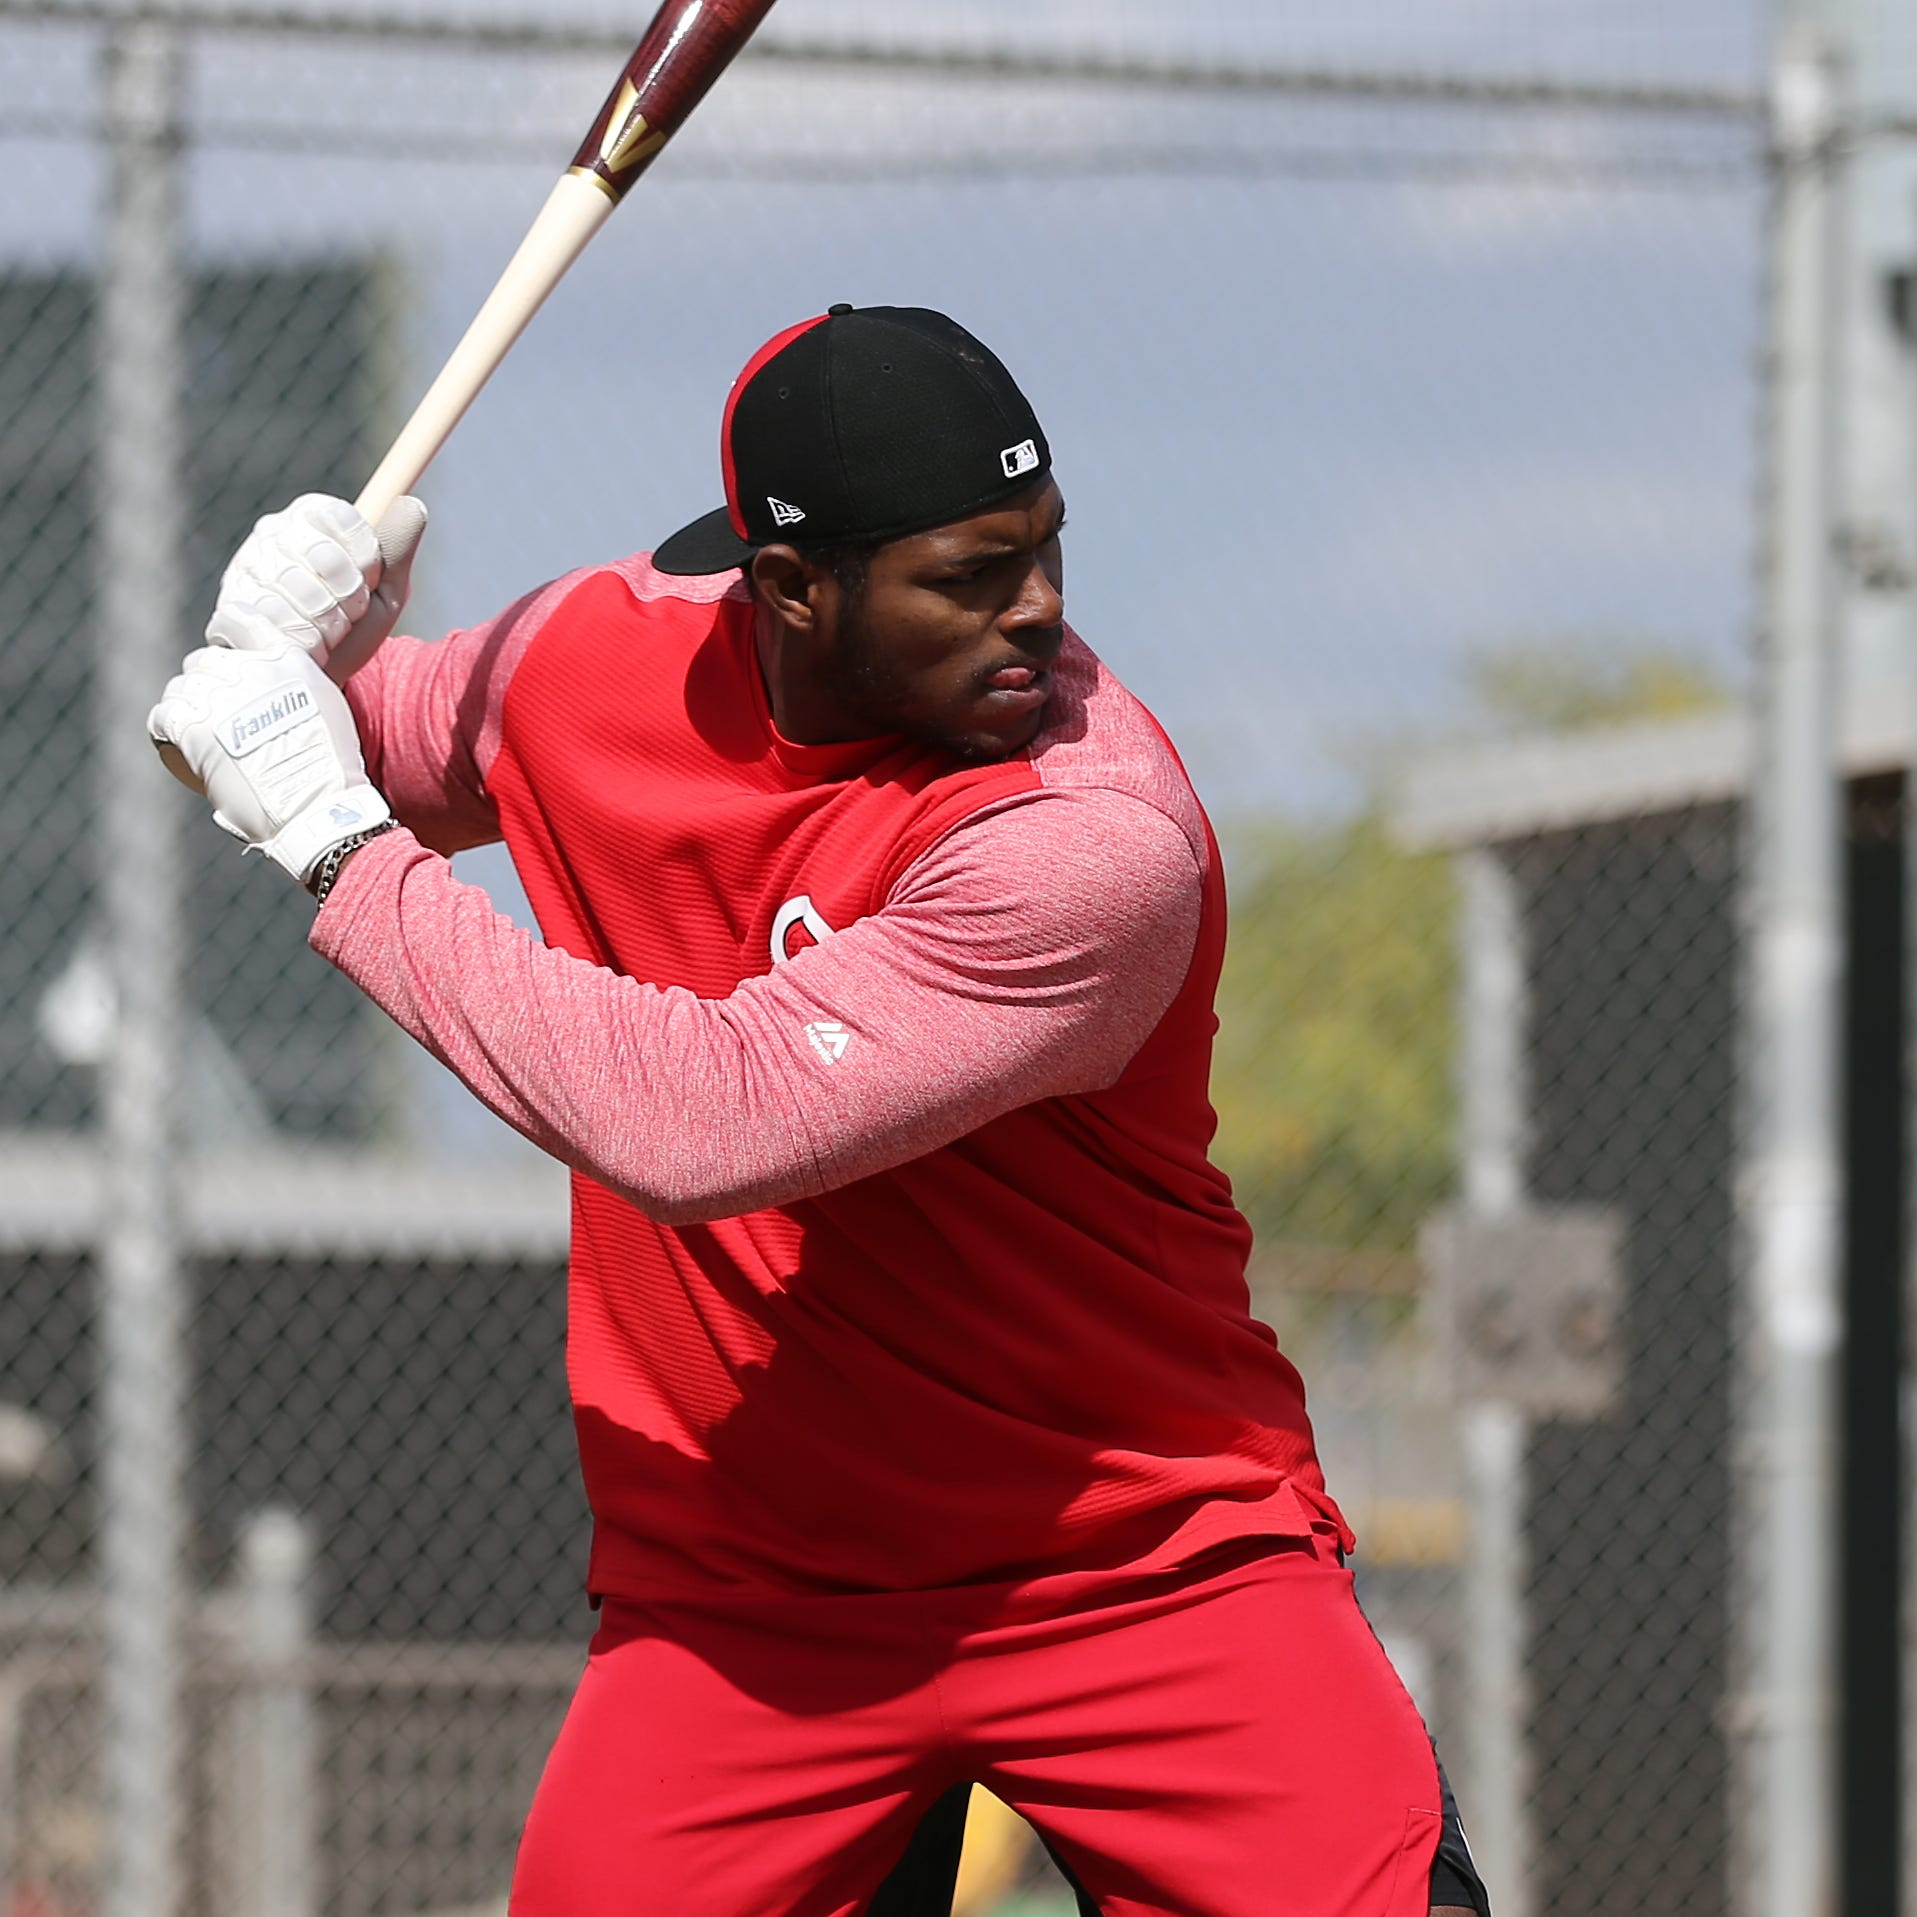 Yasiel Puig to the Cincinnati Reds: Give me the money and you can name the years